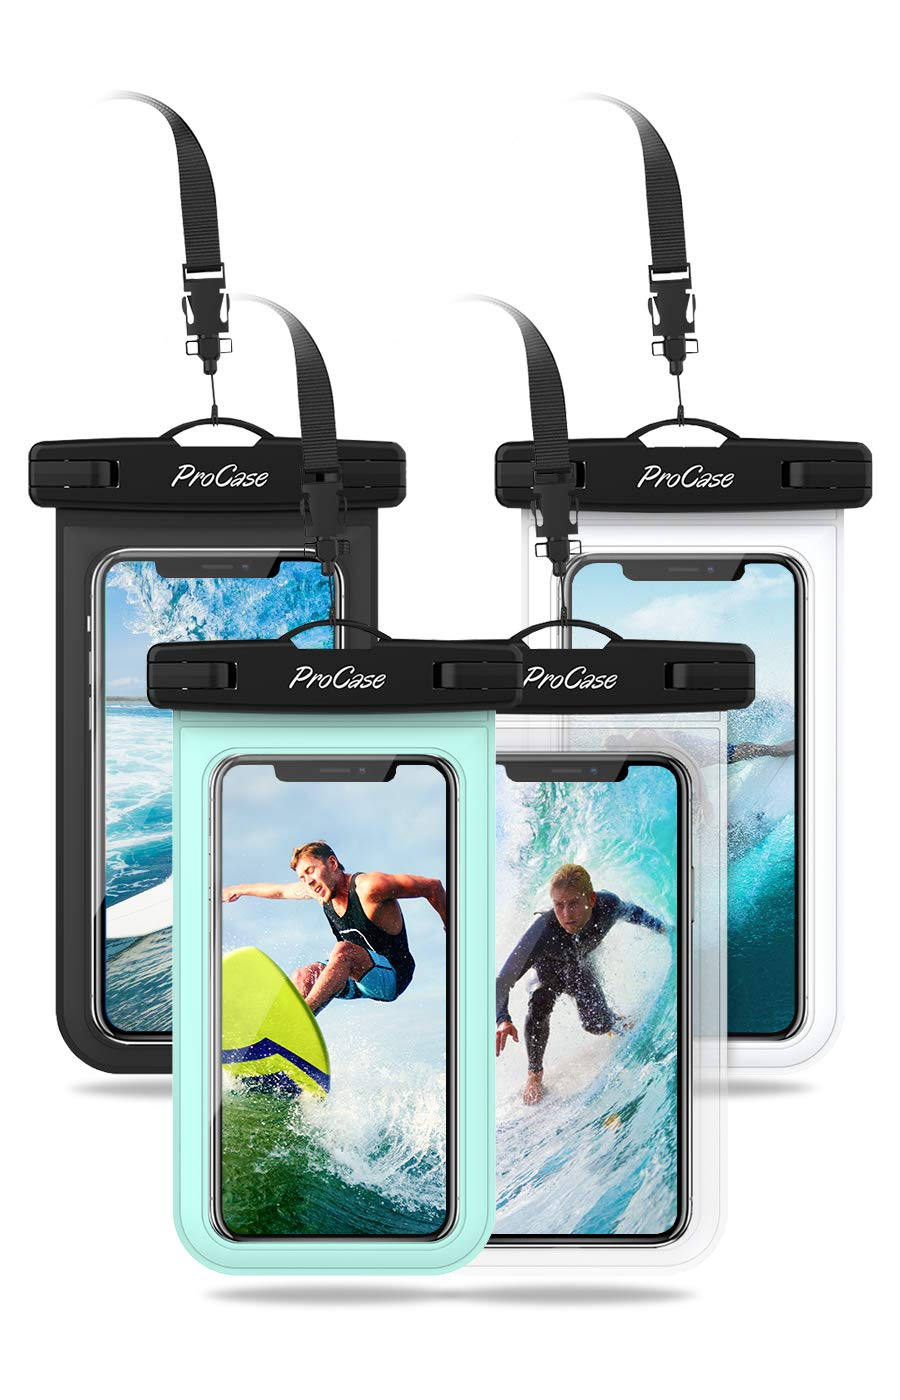 """Procase Universal Cellphone Waterproof Pouch Dry Bag Underwater Case for iPhone 11 Pro Max Xs Max XR X 8 7 6S+ SE 2020, Galaxy S20 Ultra S10 S9 S8/Note10+ 9 up to 6.9""""-4 Pack, Black White Green Clear"""